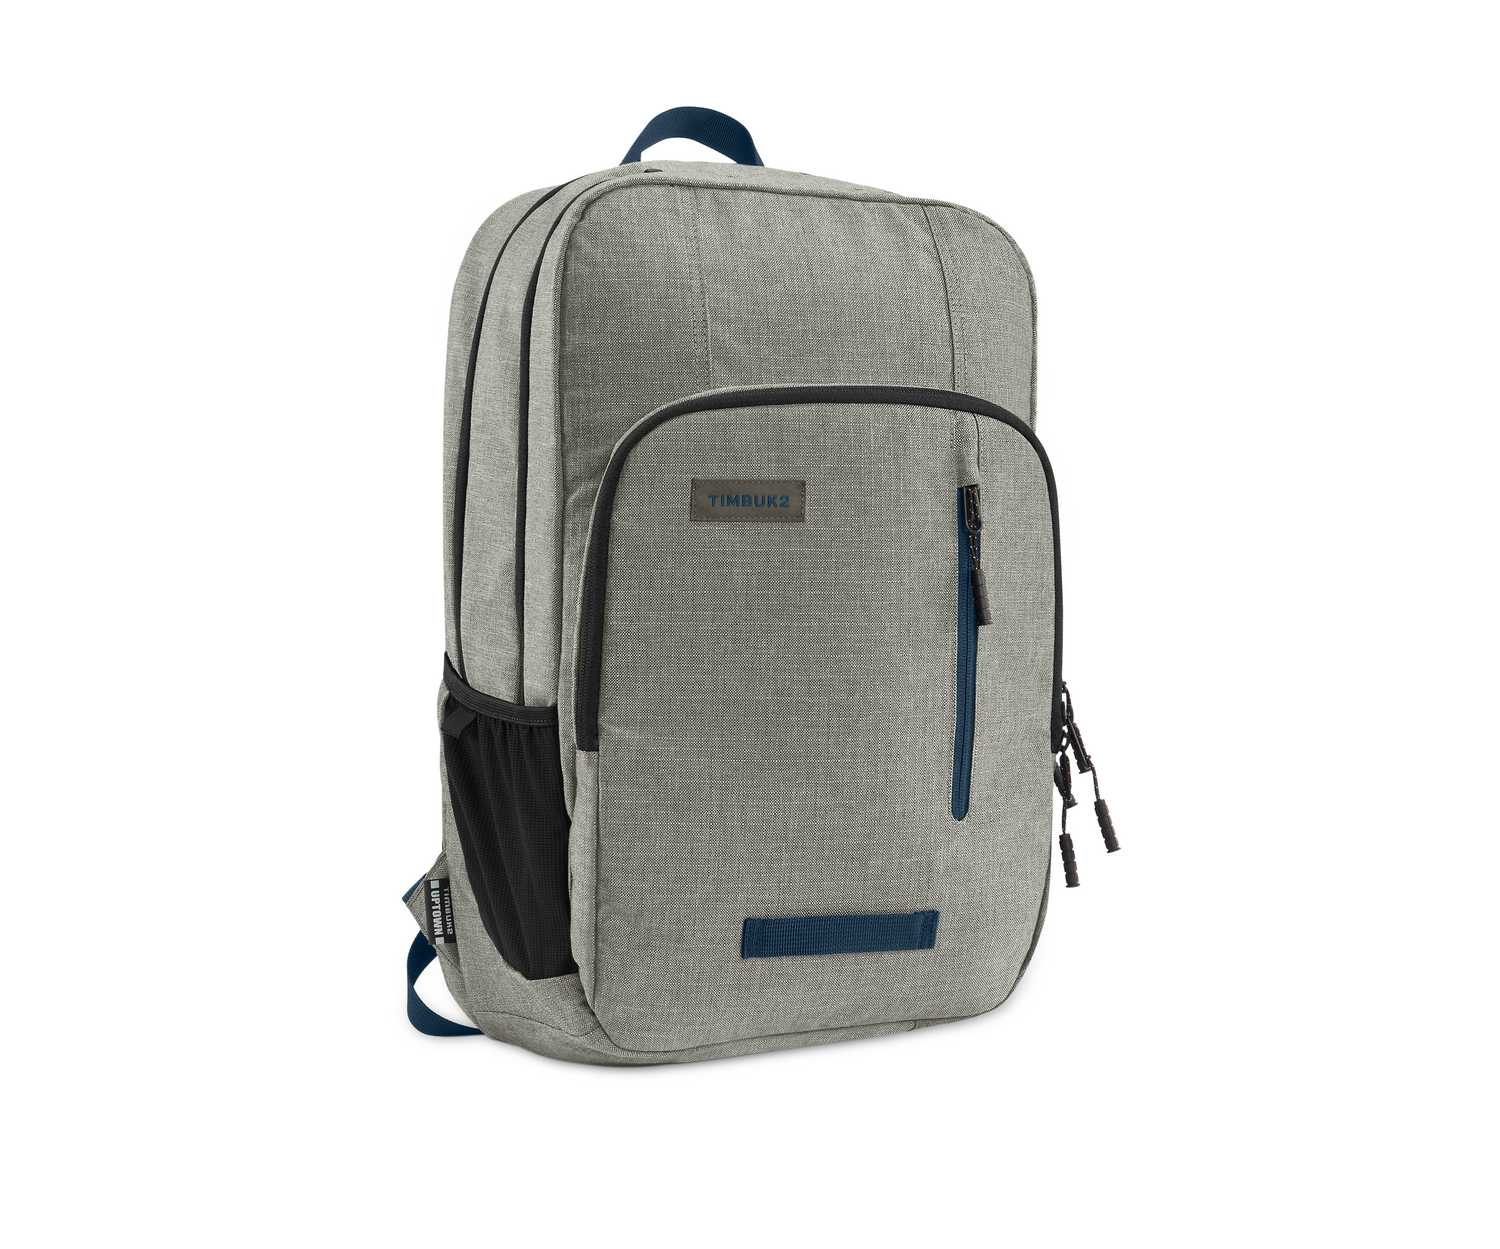 Timbuk2 252 - Uptown Backpack